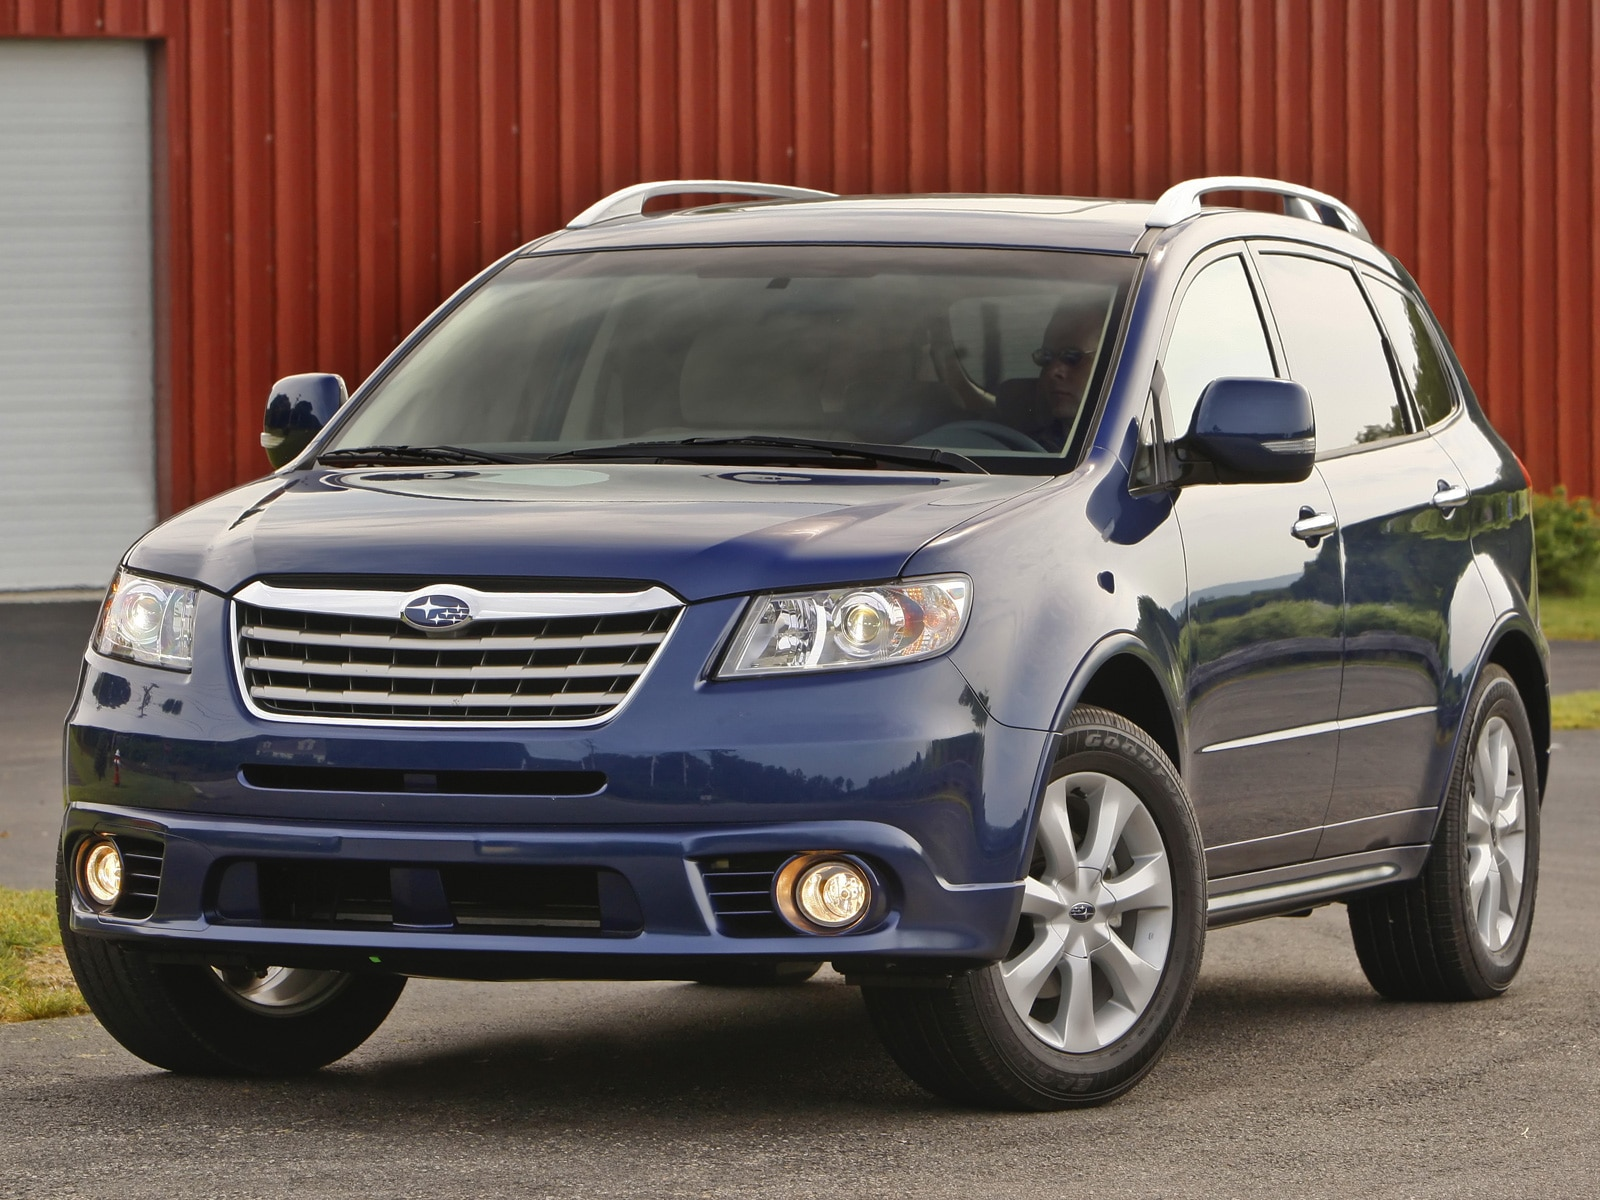 2010 subaru tribeca touring subaru fullsize suv review the vanachro Images